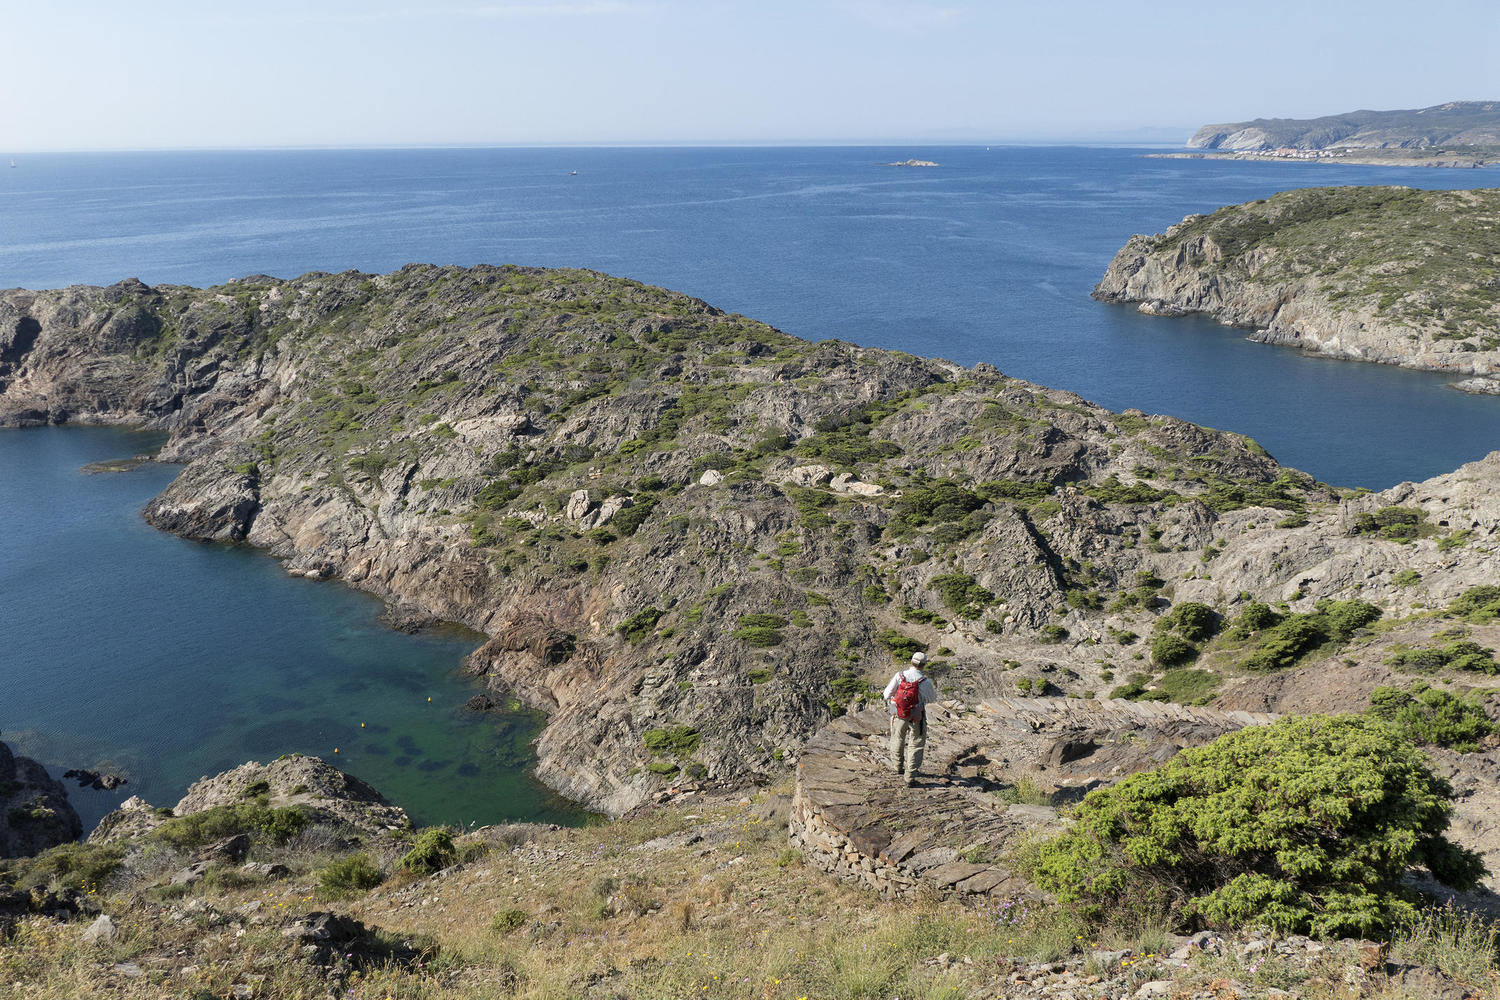 Walking in the Cap de Creus, where the Pyrenees meet the Mediterranean.